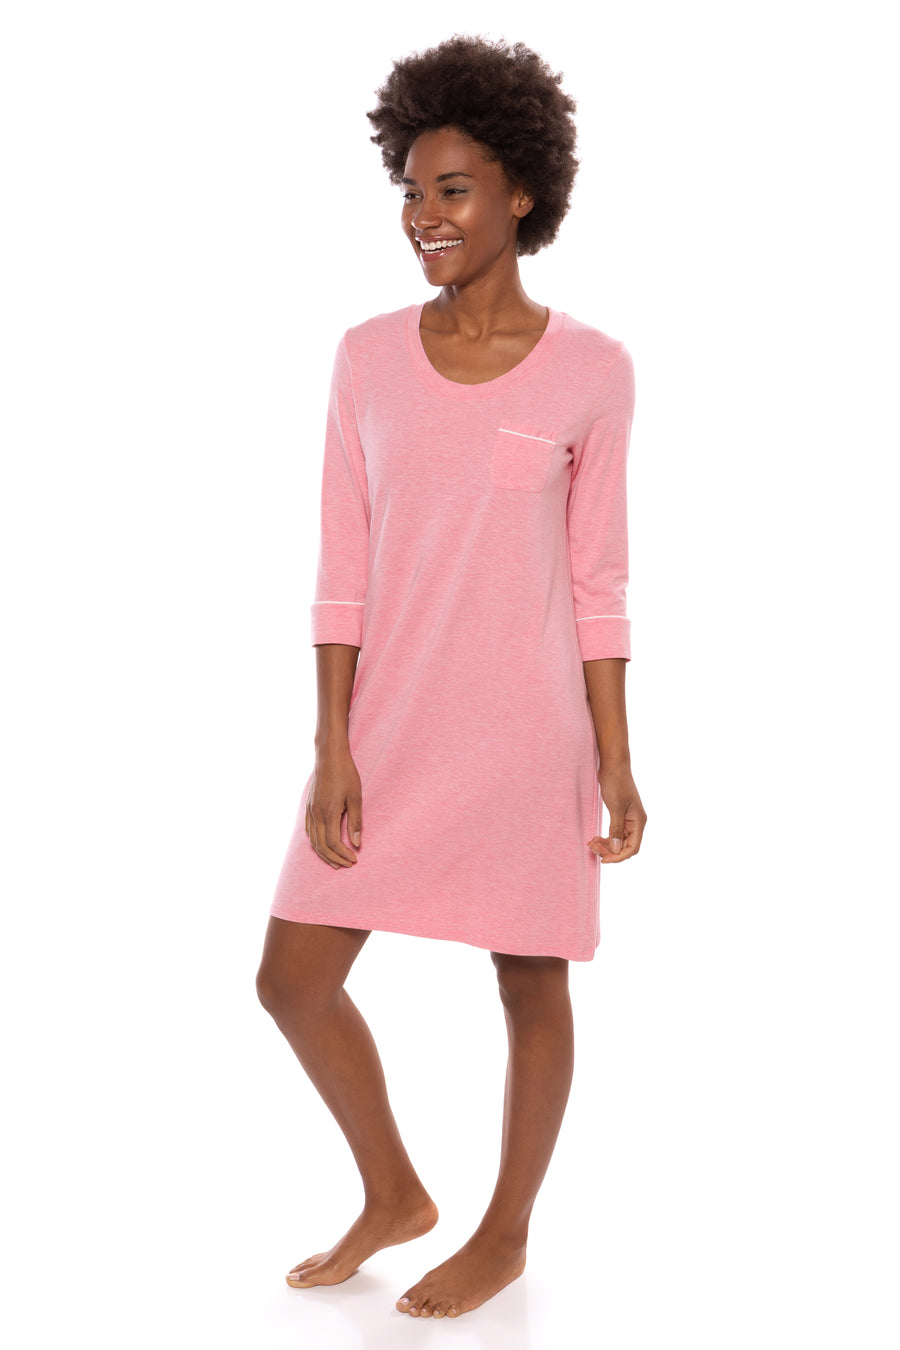 Zizz - Women's Bamboo Viscose 3/4 Sleeve Nightgown - TexereSilk